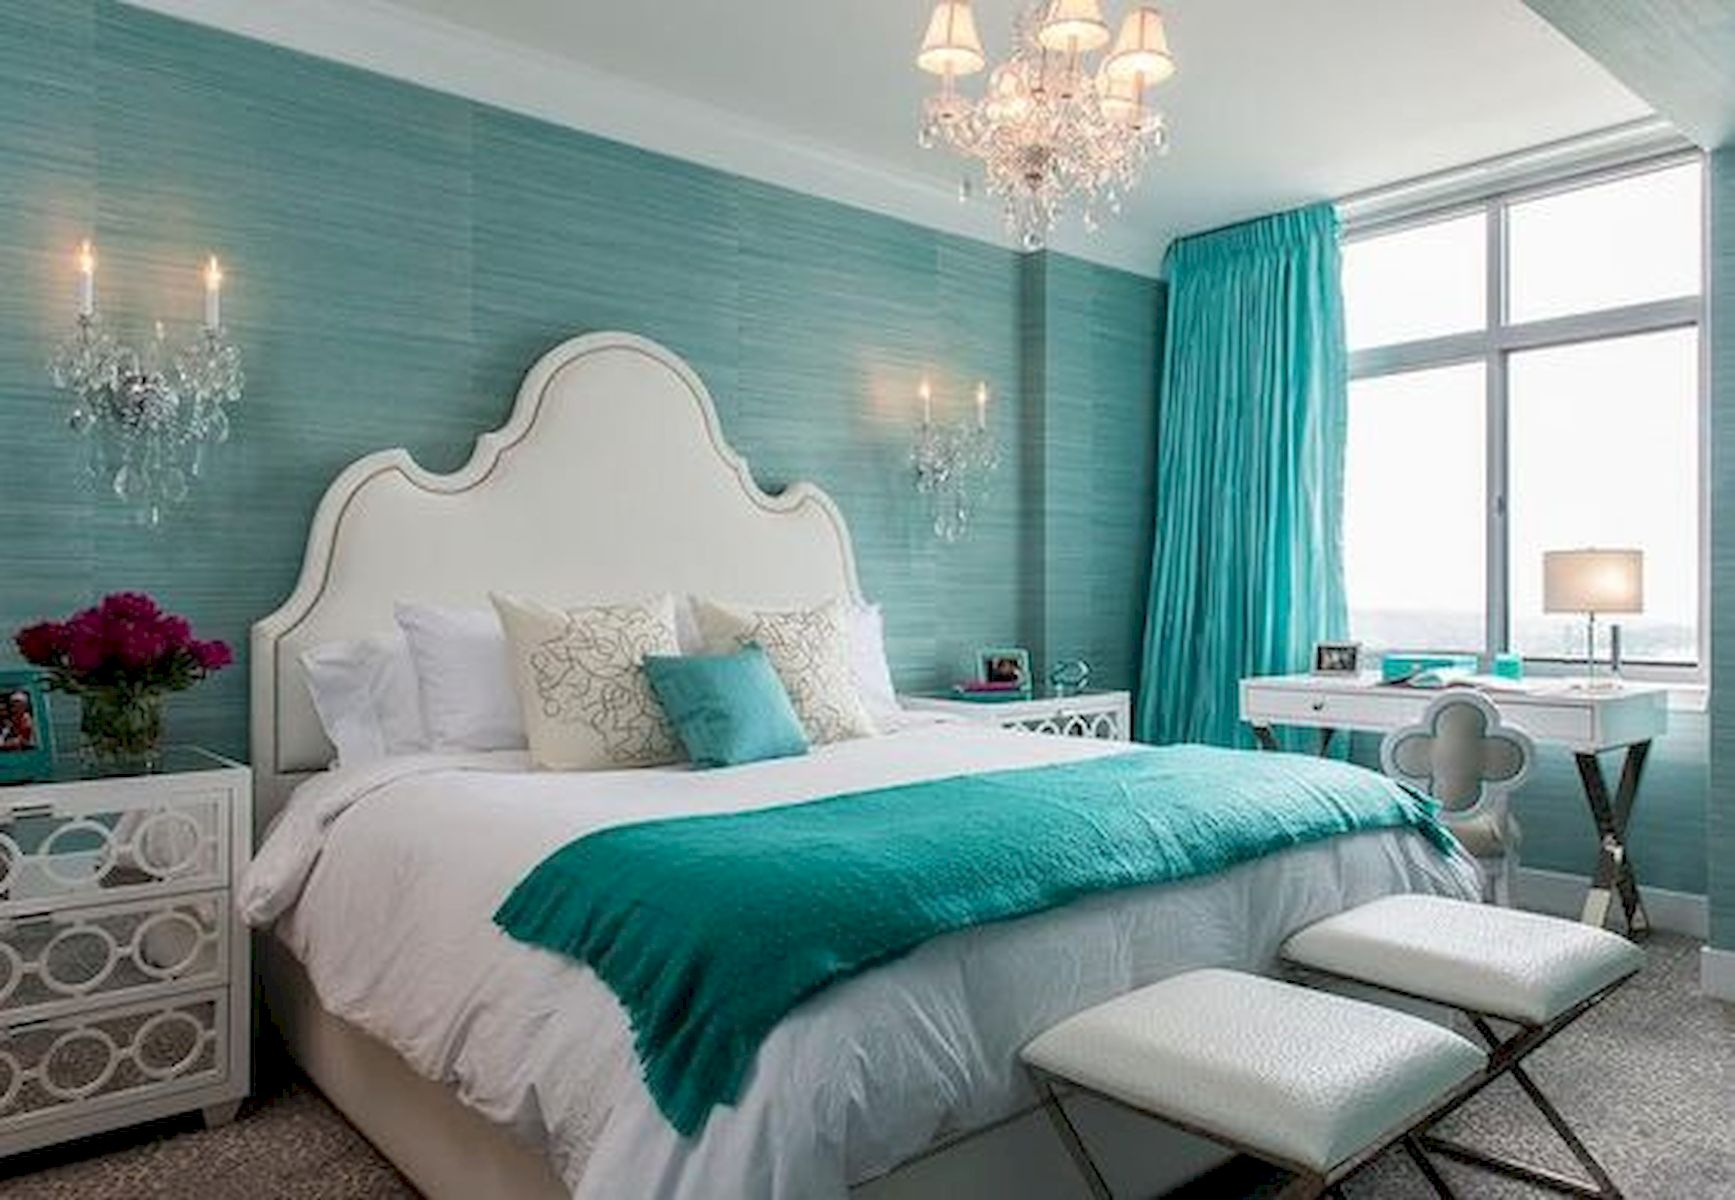 70 Beautiful DIY Colorful Bedroom Design Ideas and Remodel (11)